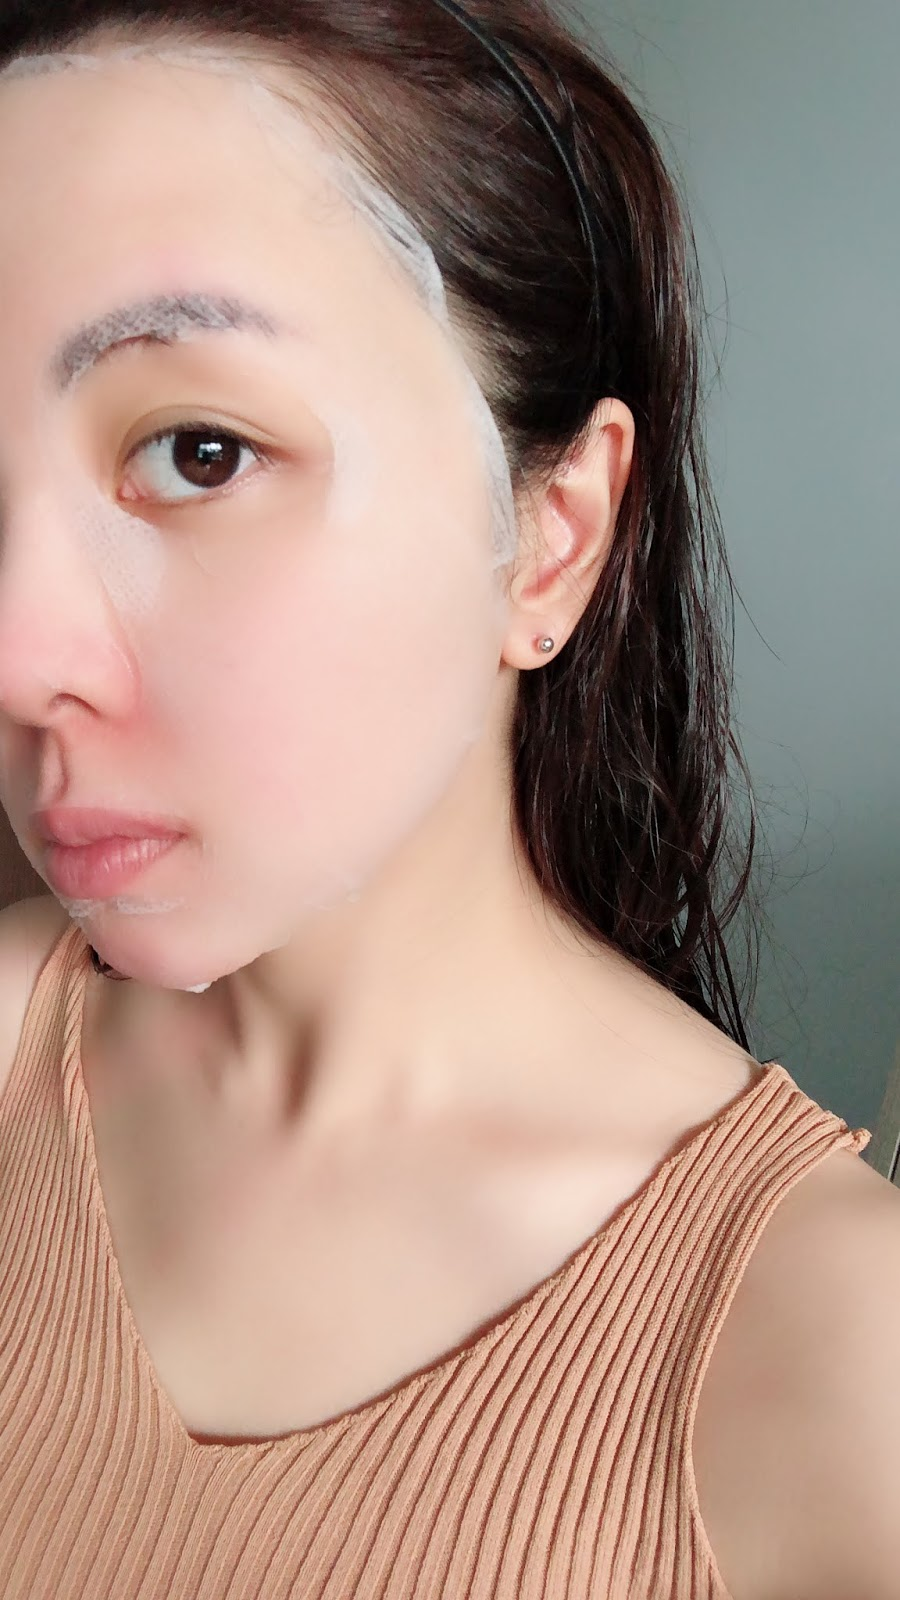 for asian cam slut rides dildo in various positions agree, this